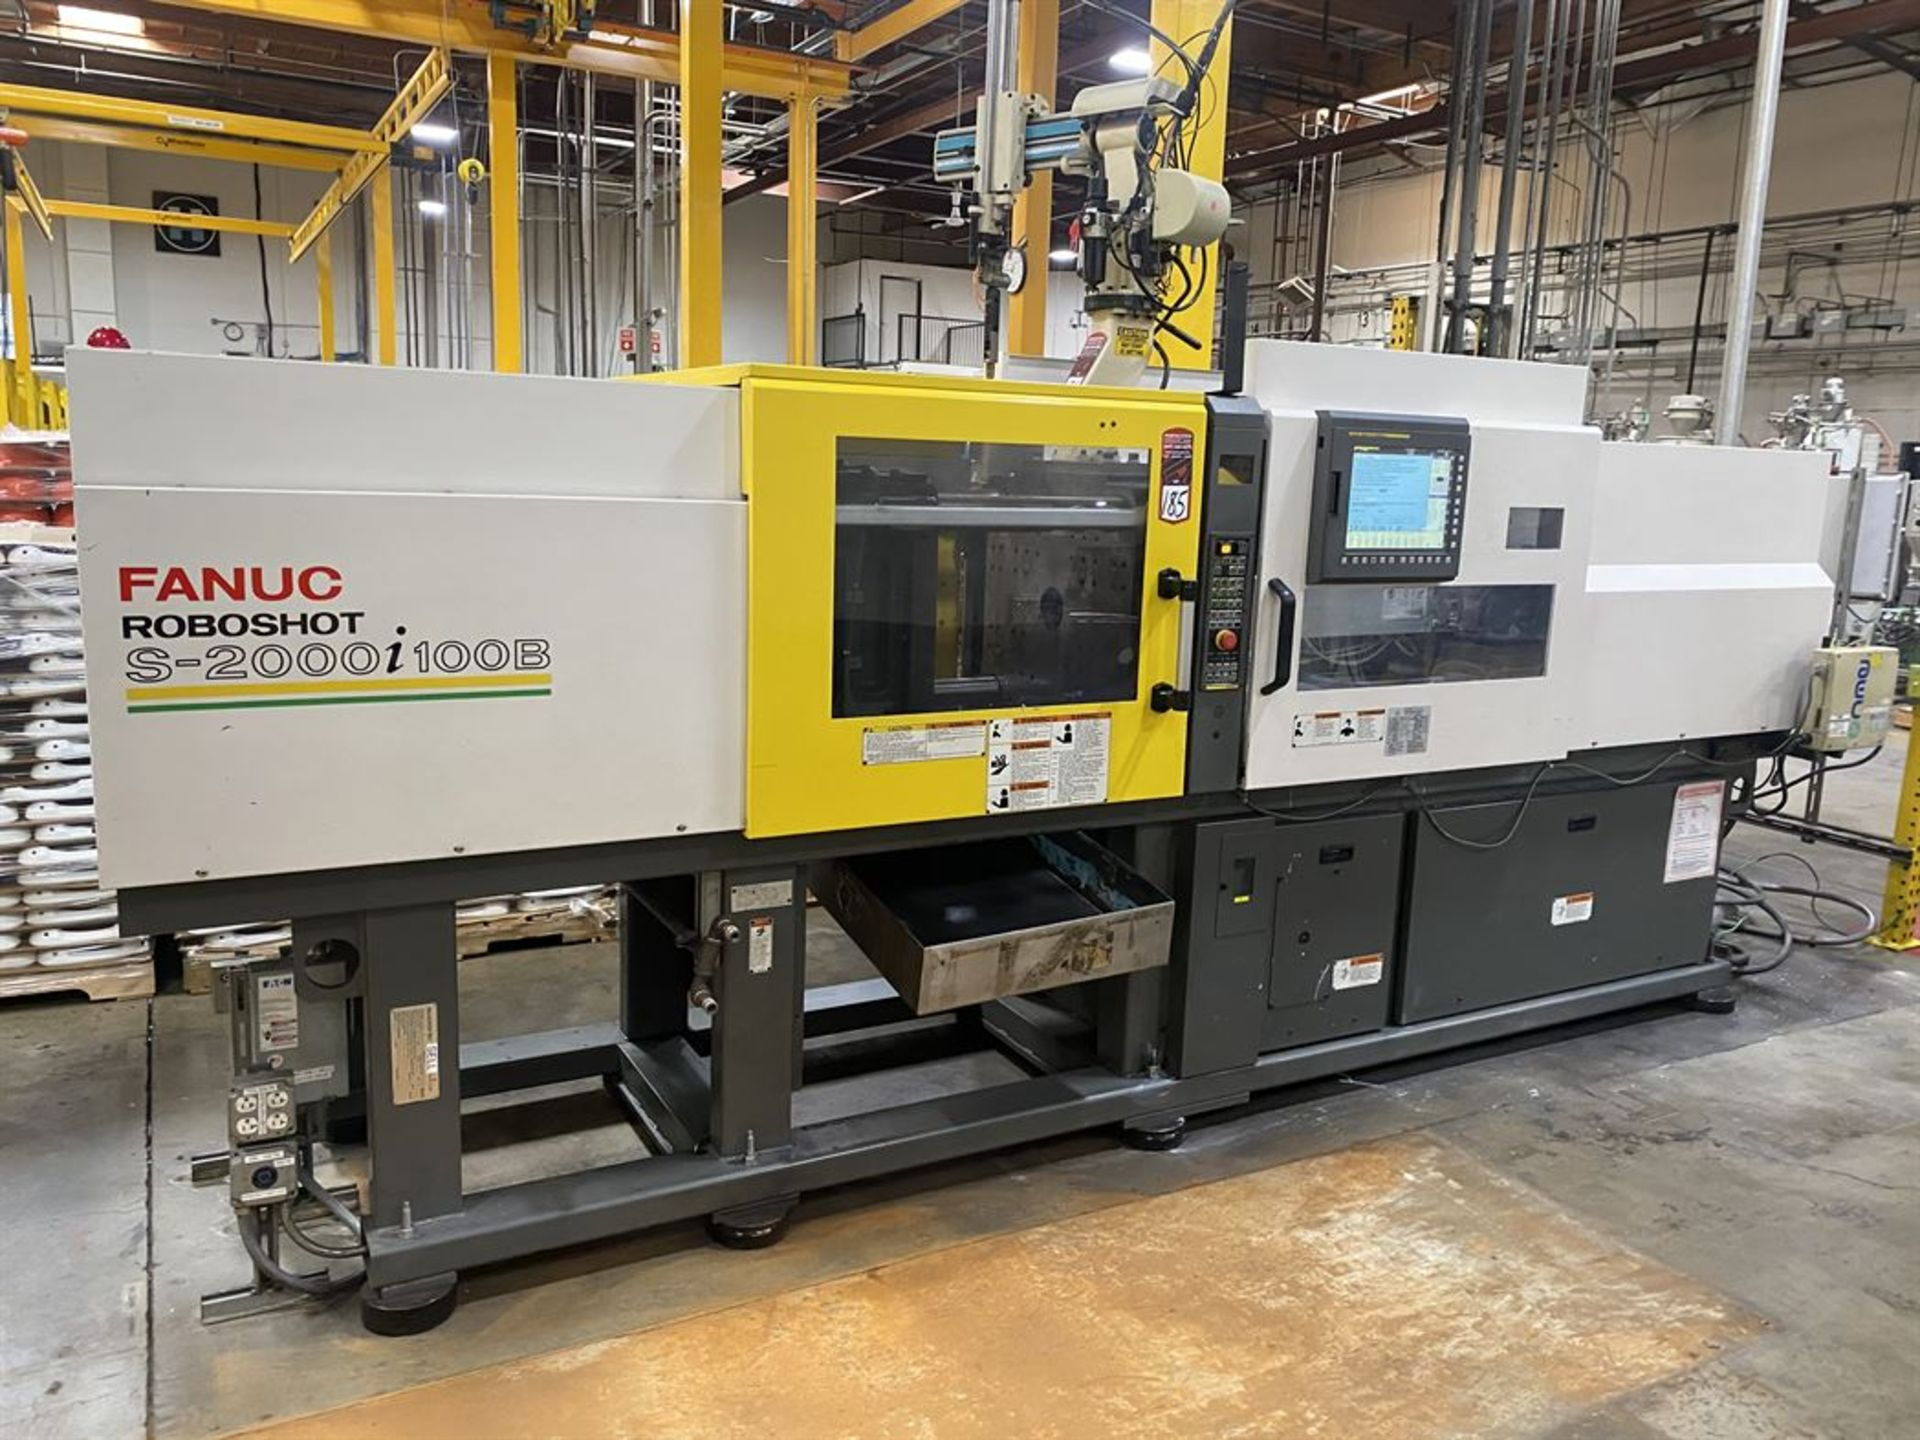 Lot 185 - 2012 CINCINNATI MILACRON FANUC RoboShot S-2000i 110B 110 Ton Electric Injection Molder, s/n